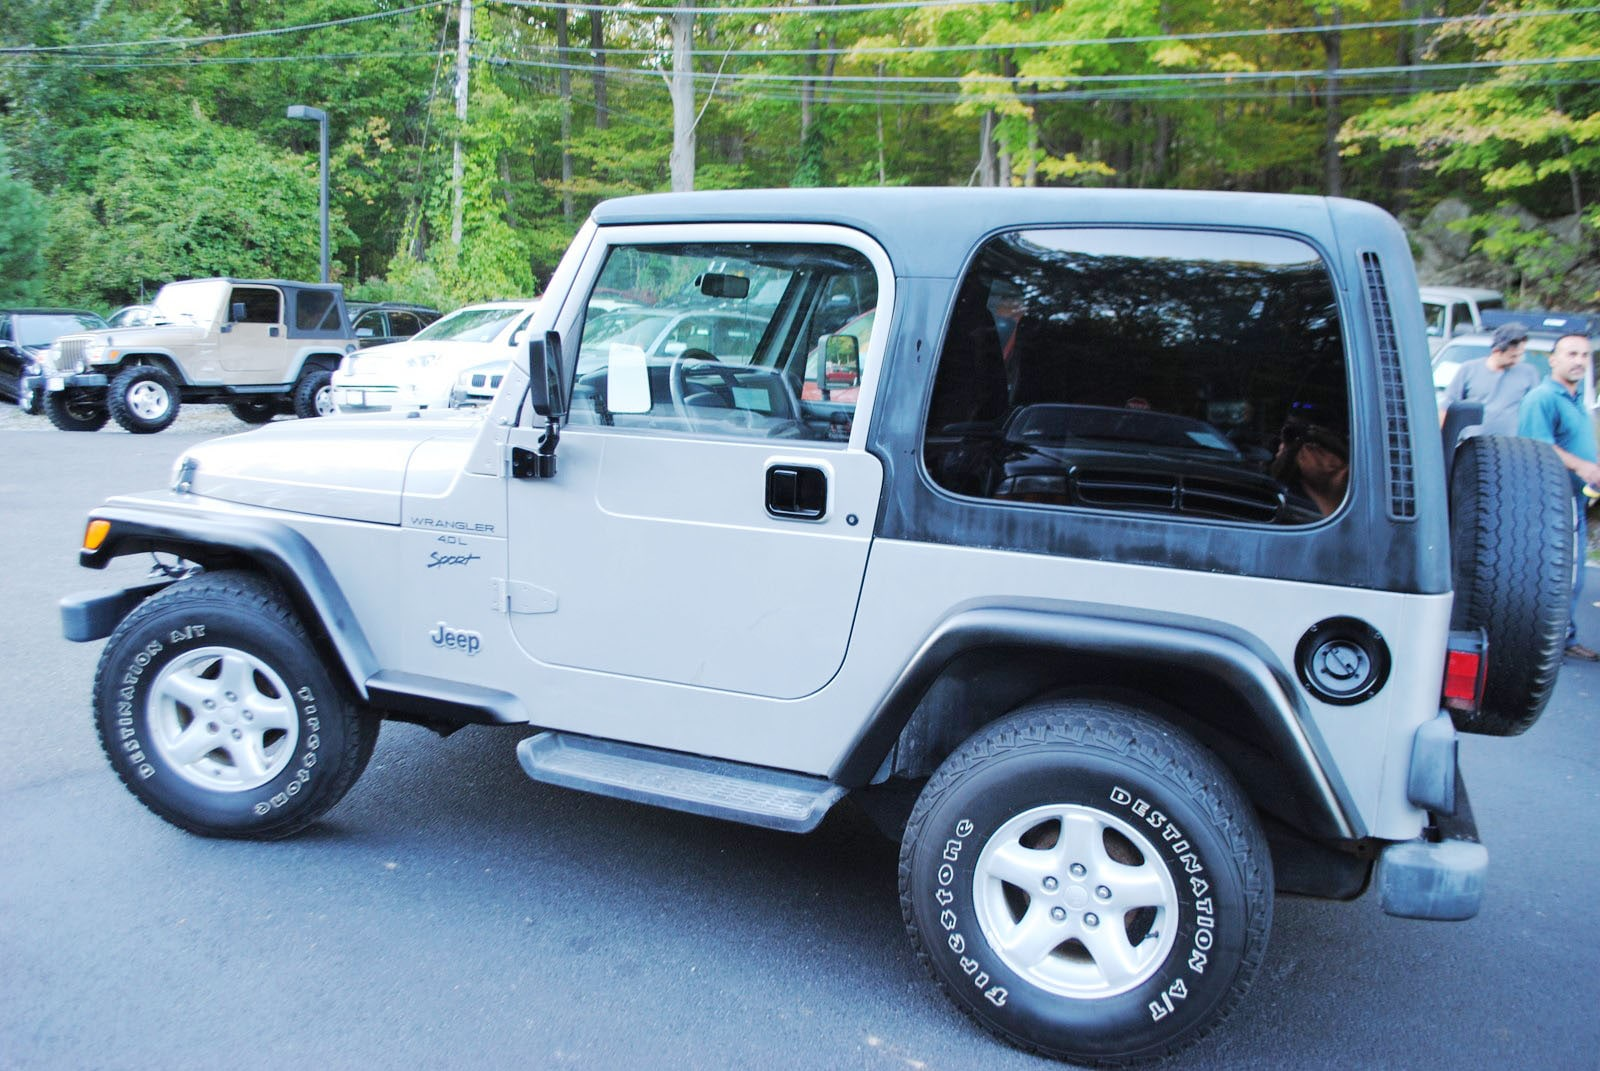 used 2000 jeep wrangler for sale west milford nj. Black Bedroom Furniture Sets. Home Design Ideas